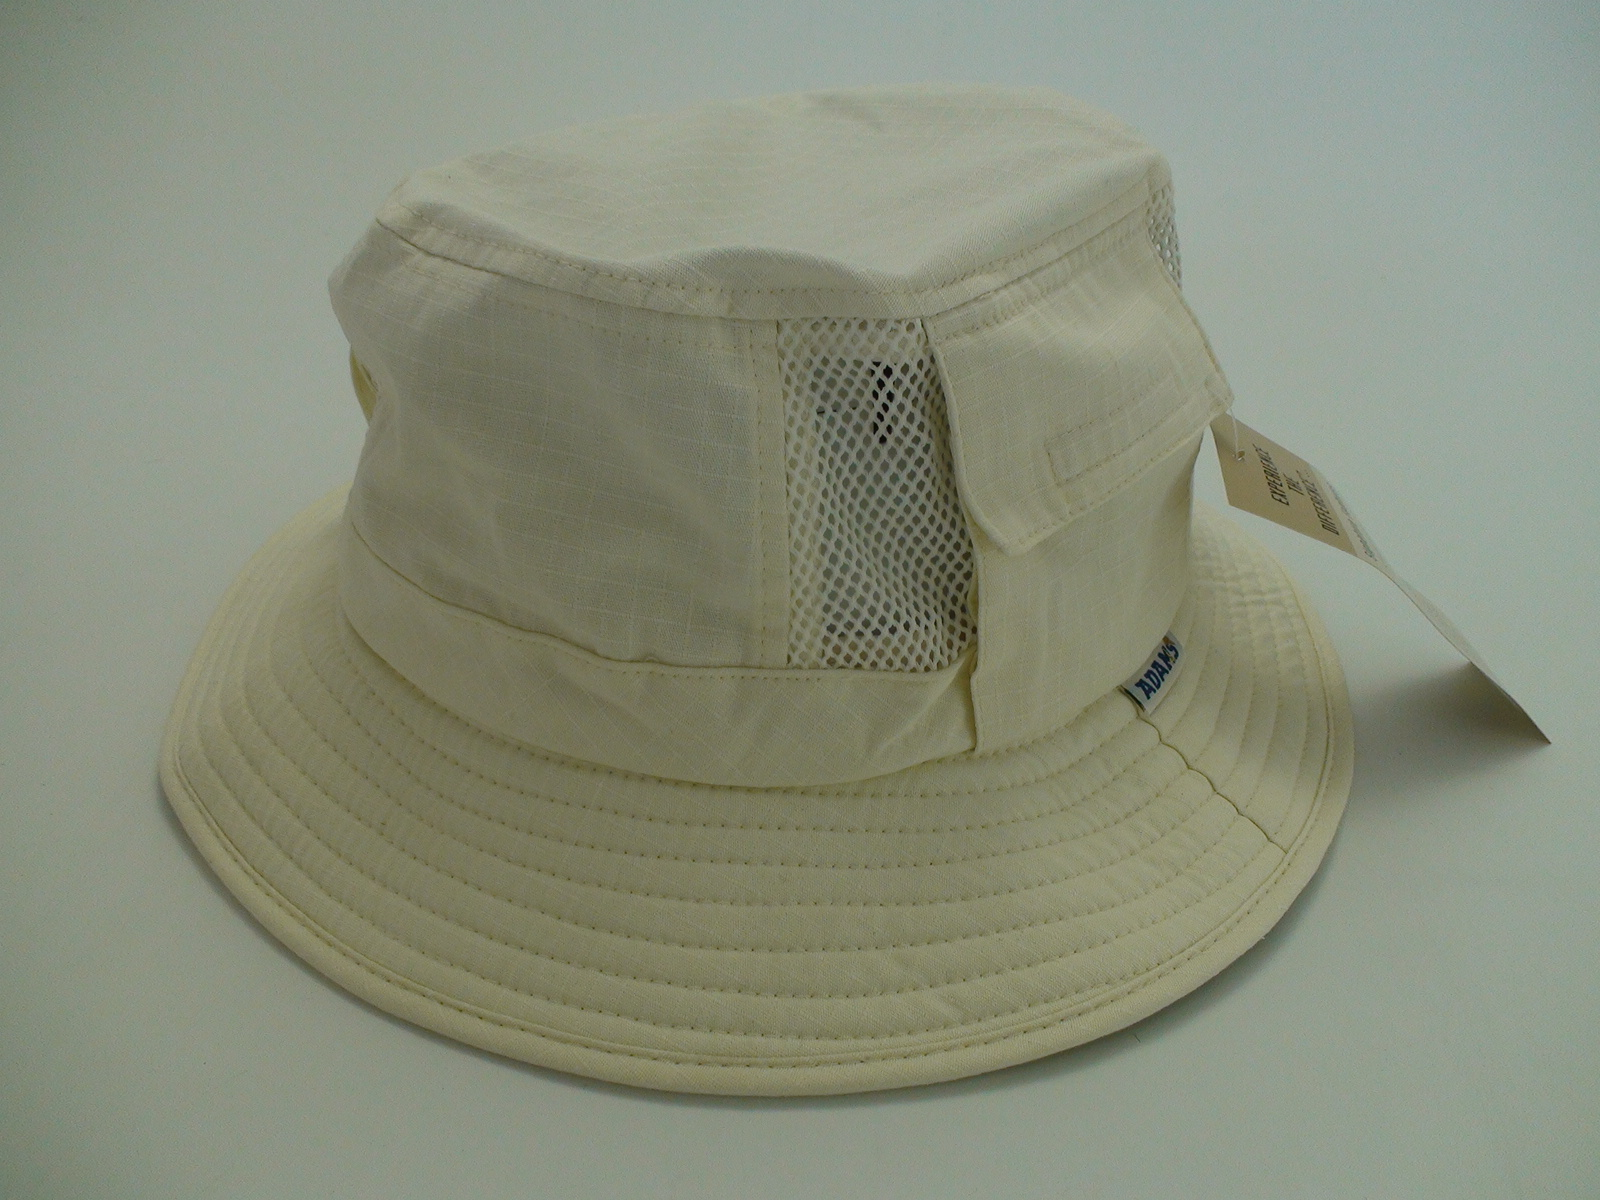 Adams Ivory 100% Cotton Vented Outdoor Fishing Bucket Hat e7ef0196a74